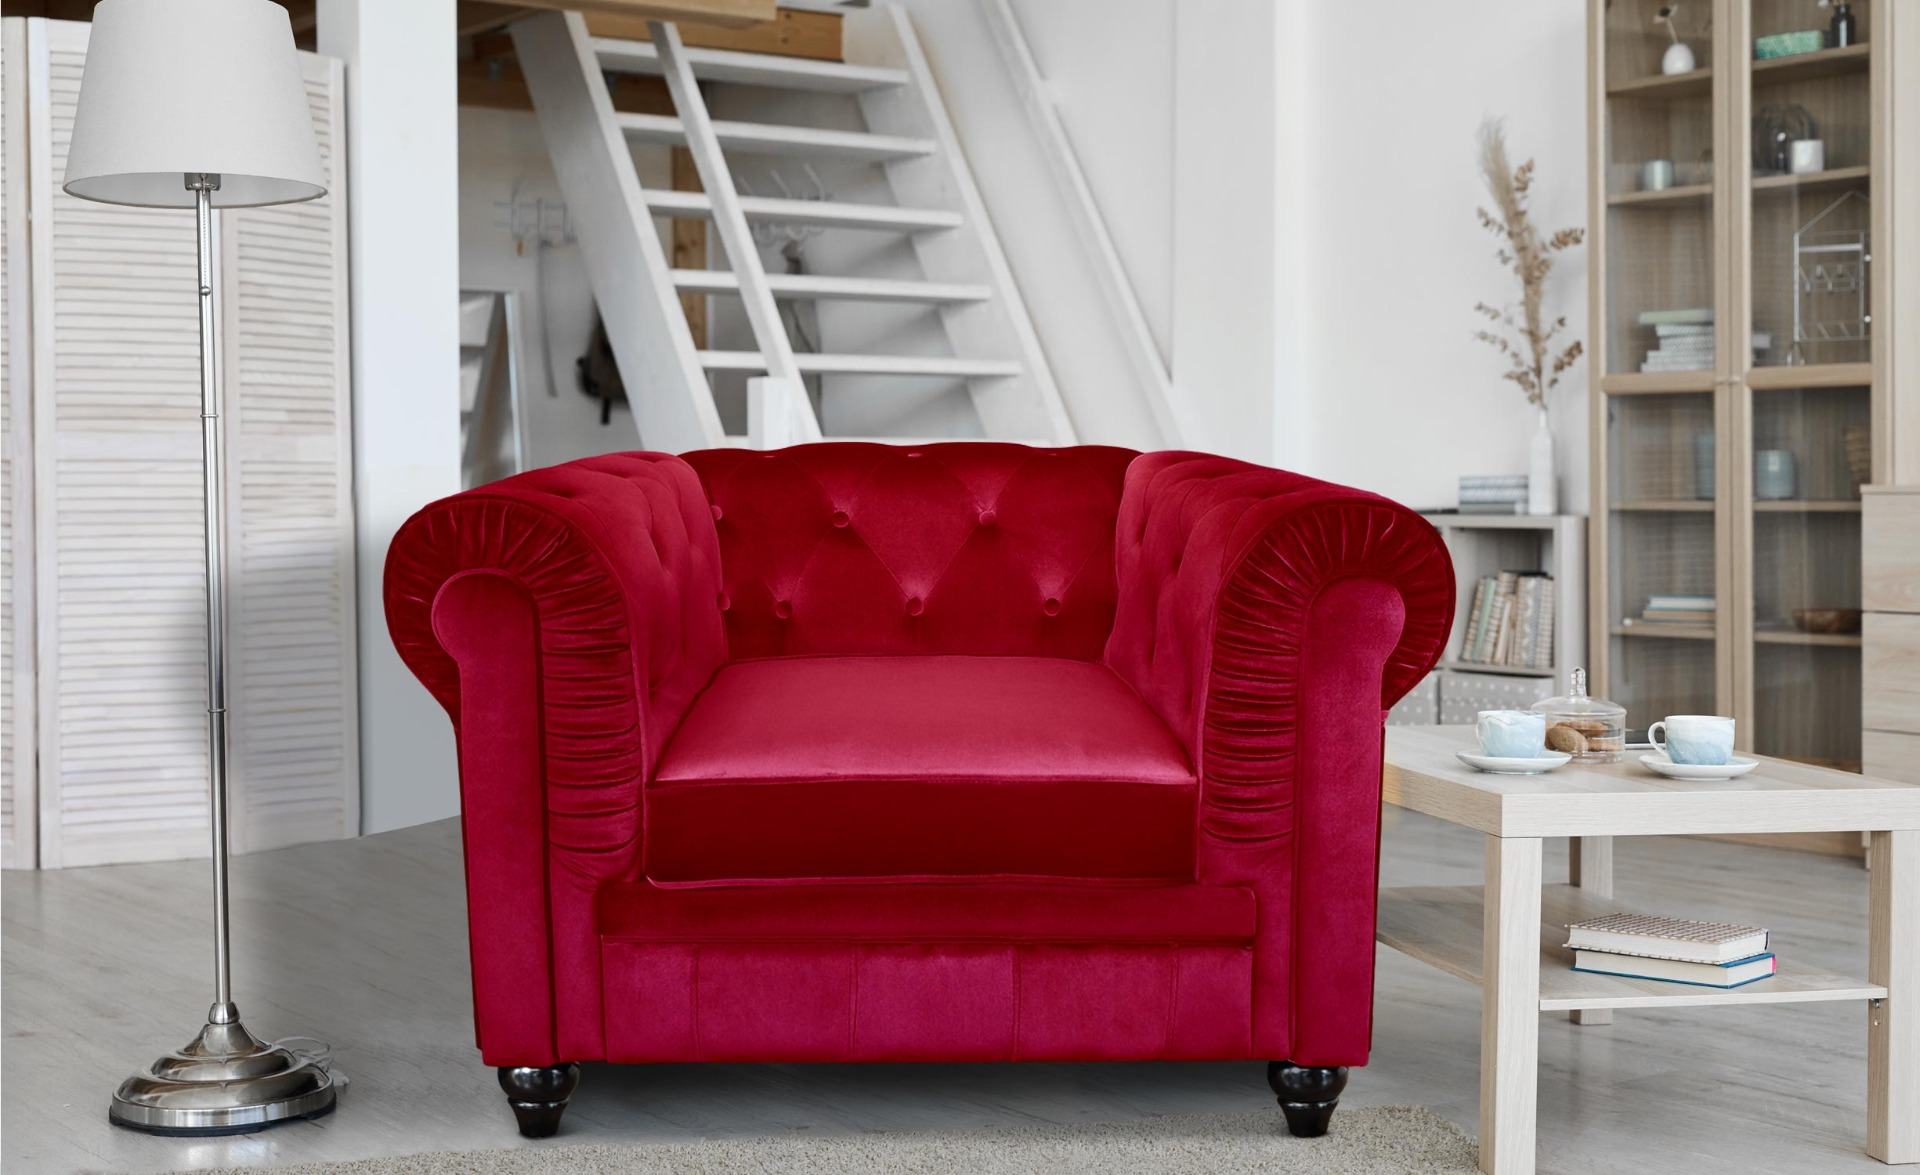 Grand fauteuil Chesterfield - Sessel mit Samtbezug Rot